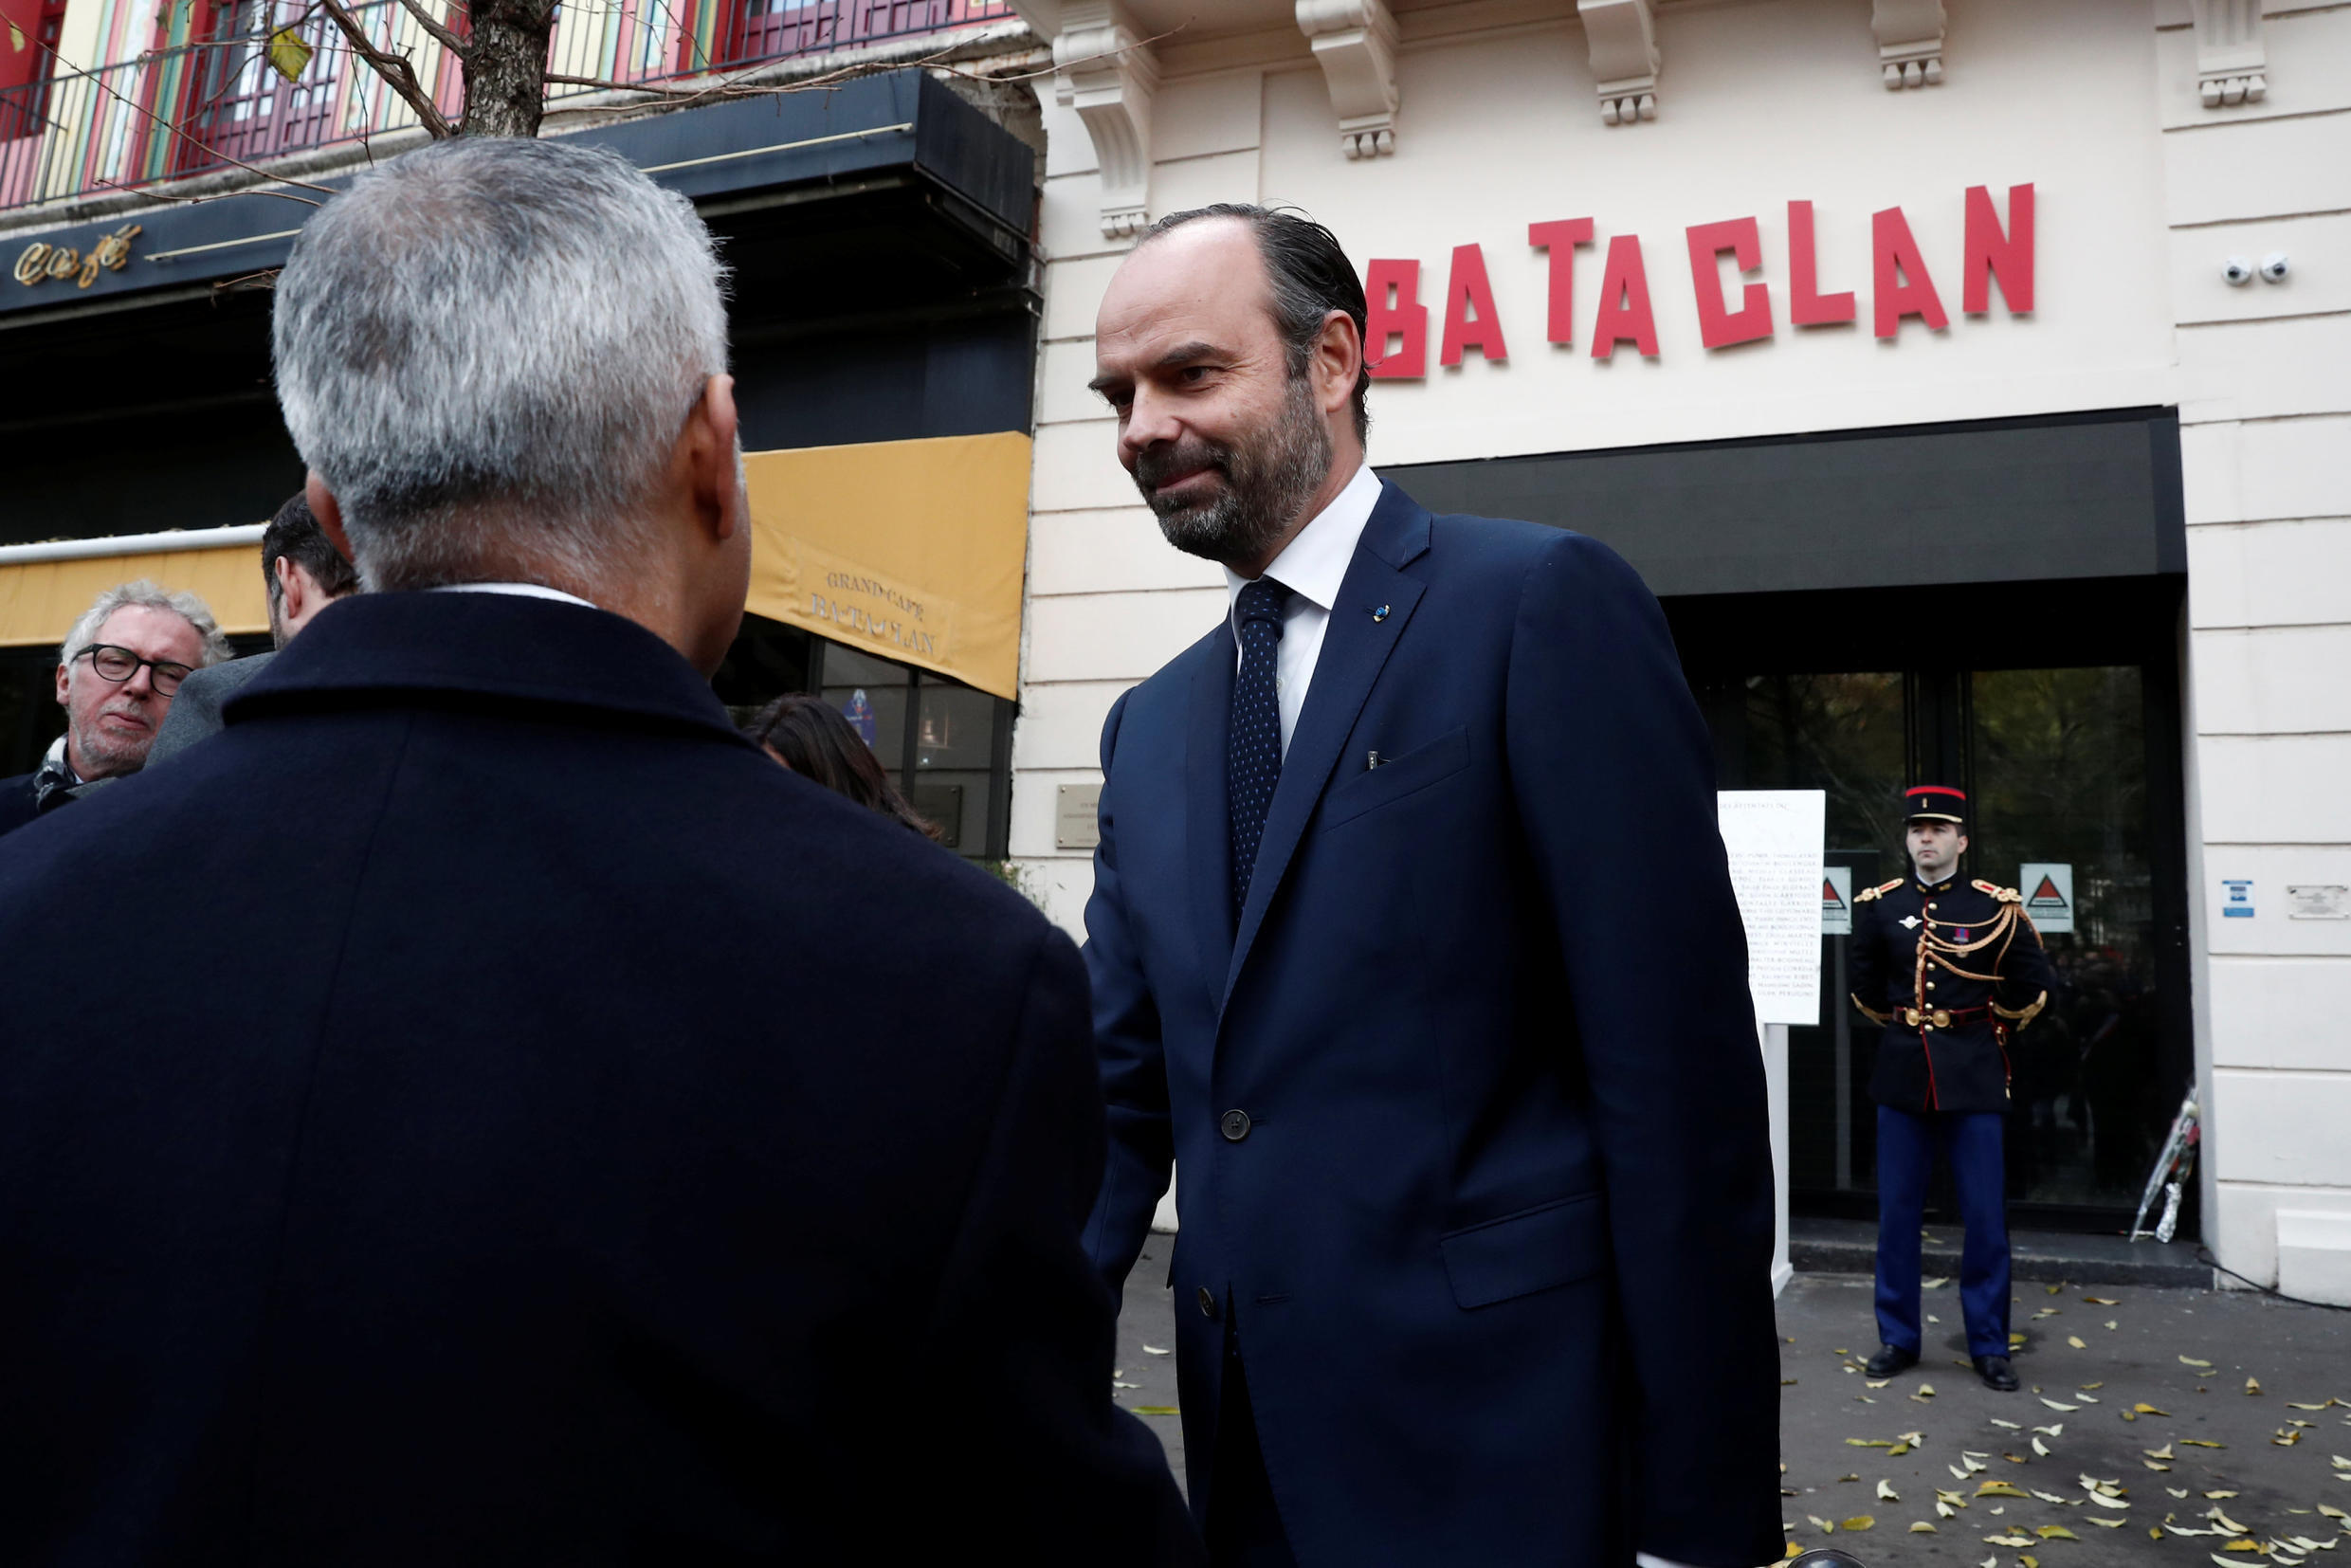 French Prime Minister Edouard Philippe at the restored Bataclan music hall in Paris on the 3rd anniversary of the terror attacks, 13 Nov. 2018